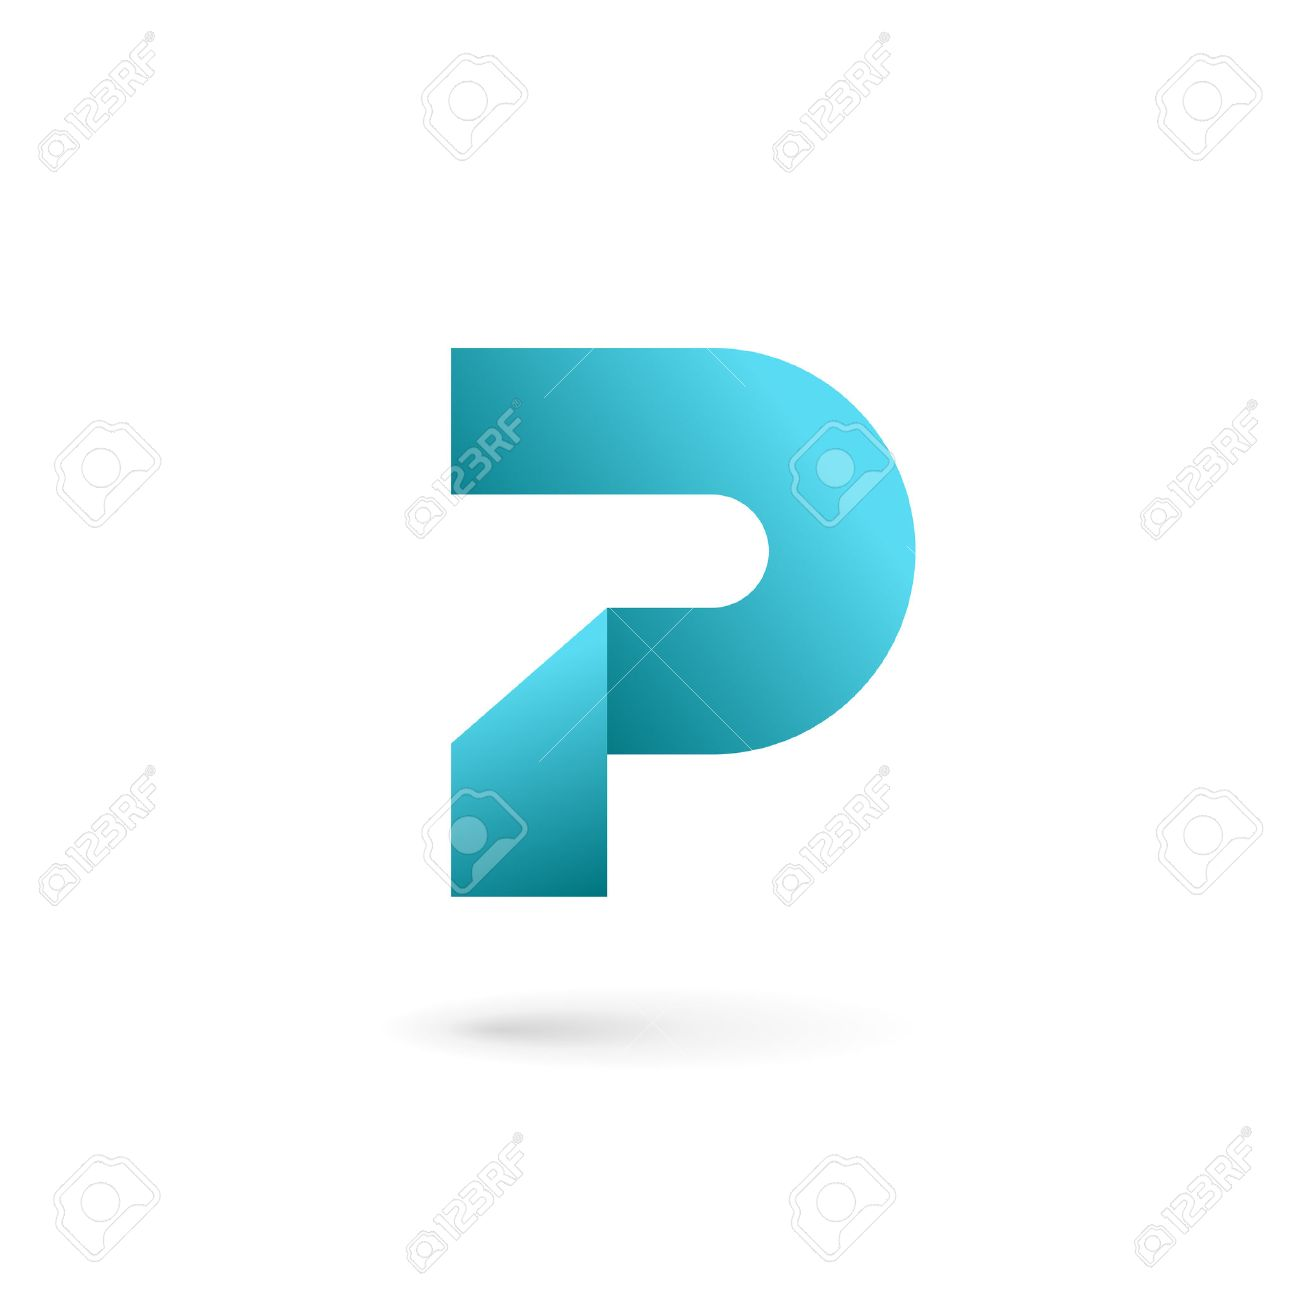 Letter P Logo Icon Design Template Elements Royalty Free Cliparts ...